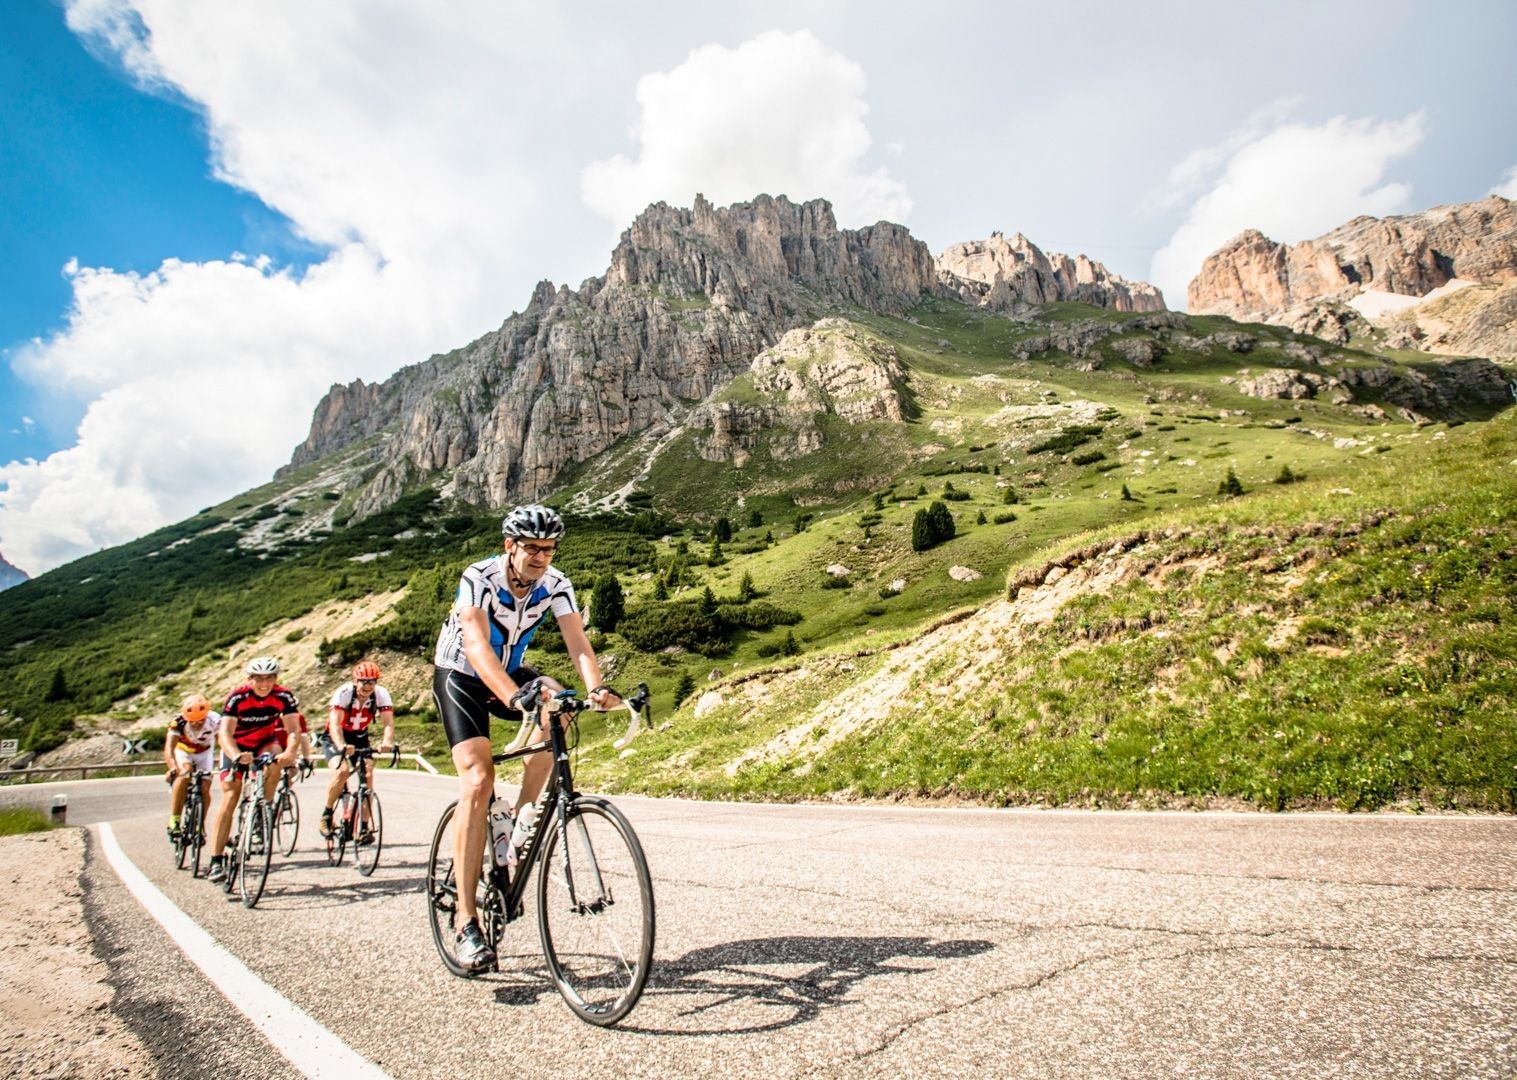 challenging-climbs-italian-dolomites-road-bike-skedaddle.jpg - Italy - Italian Dolomites - Guided Road Cycling Holiday - Road Cycling